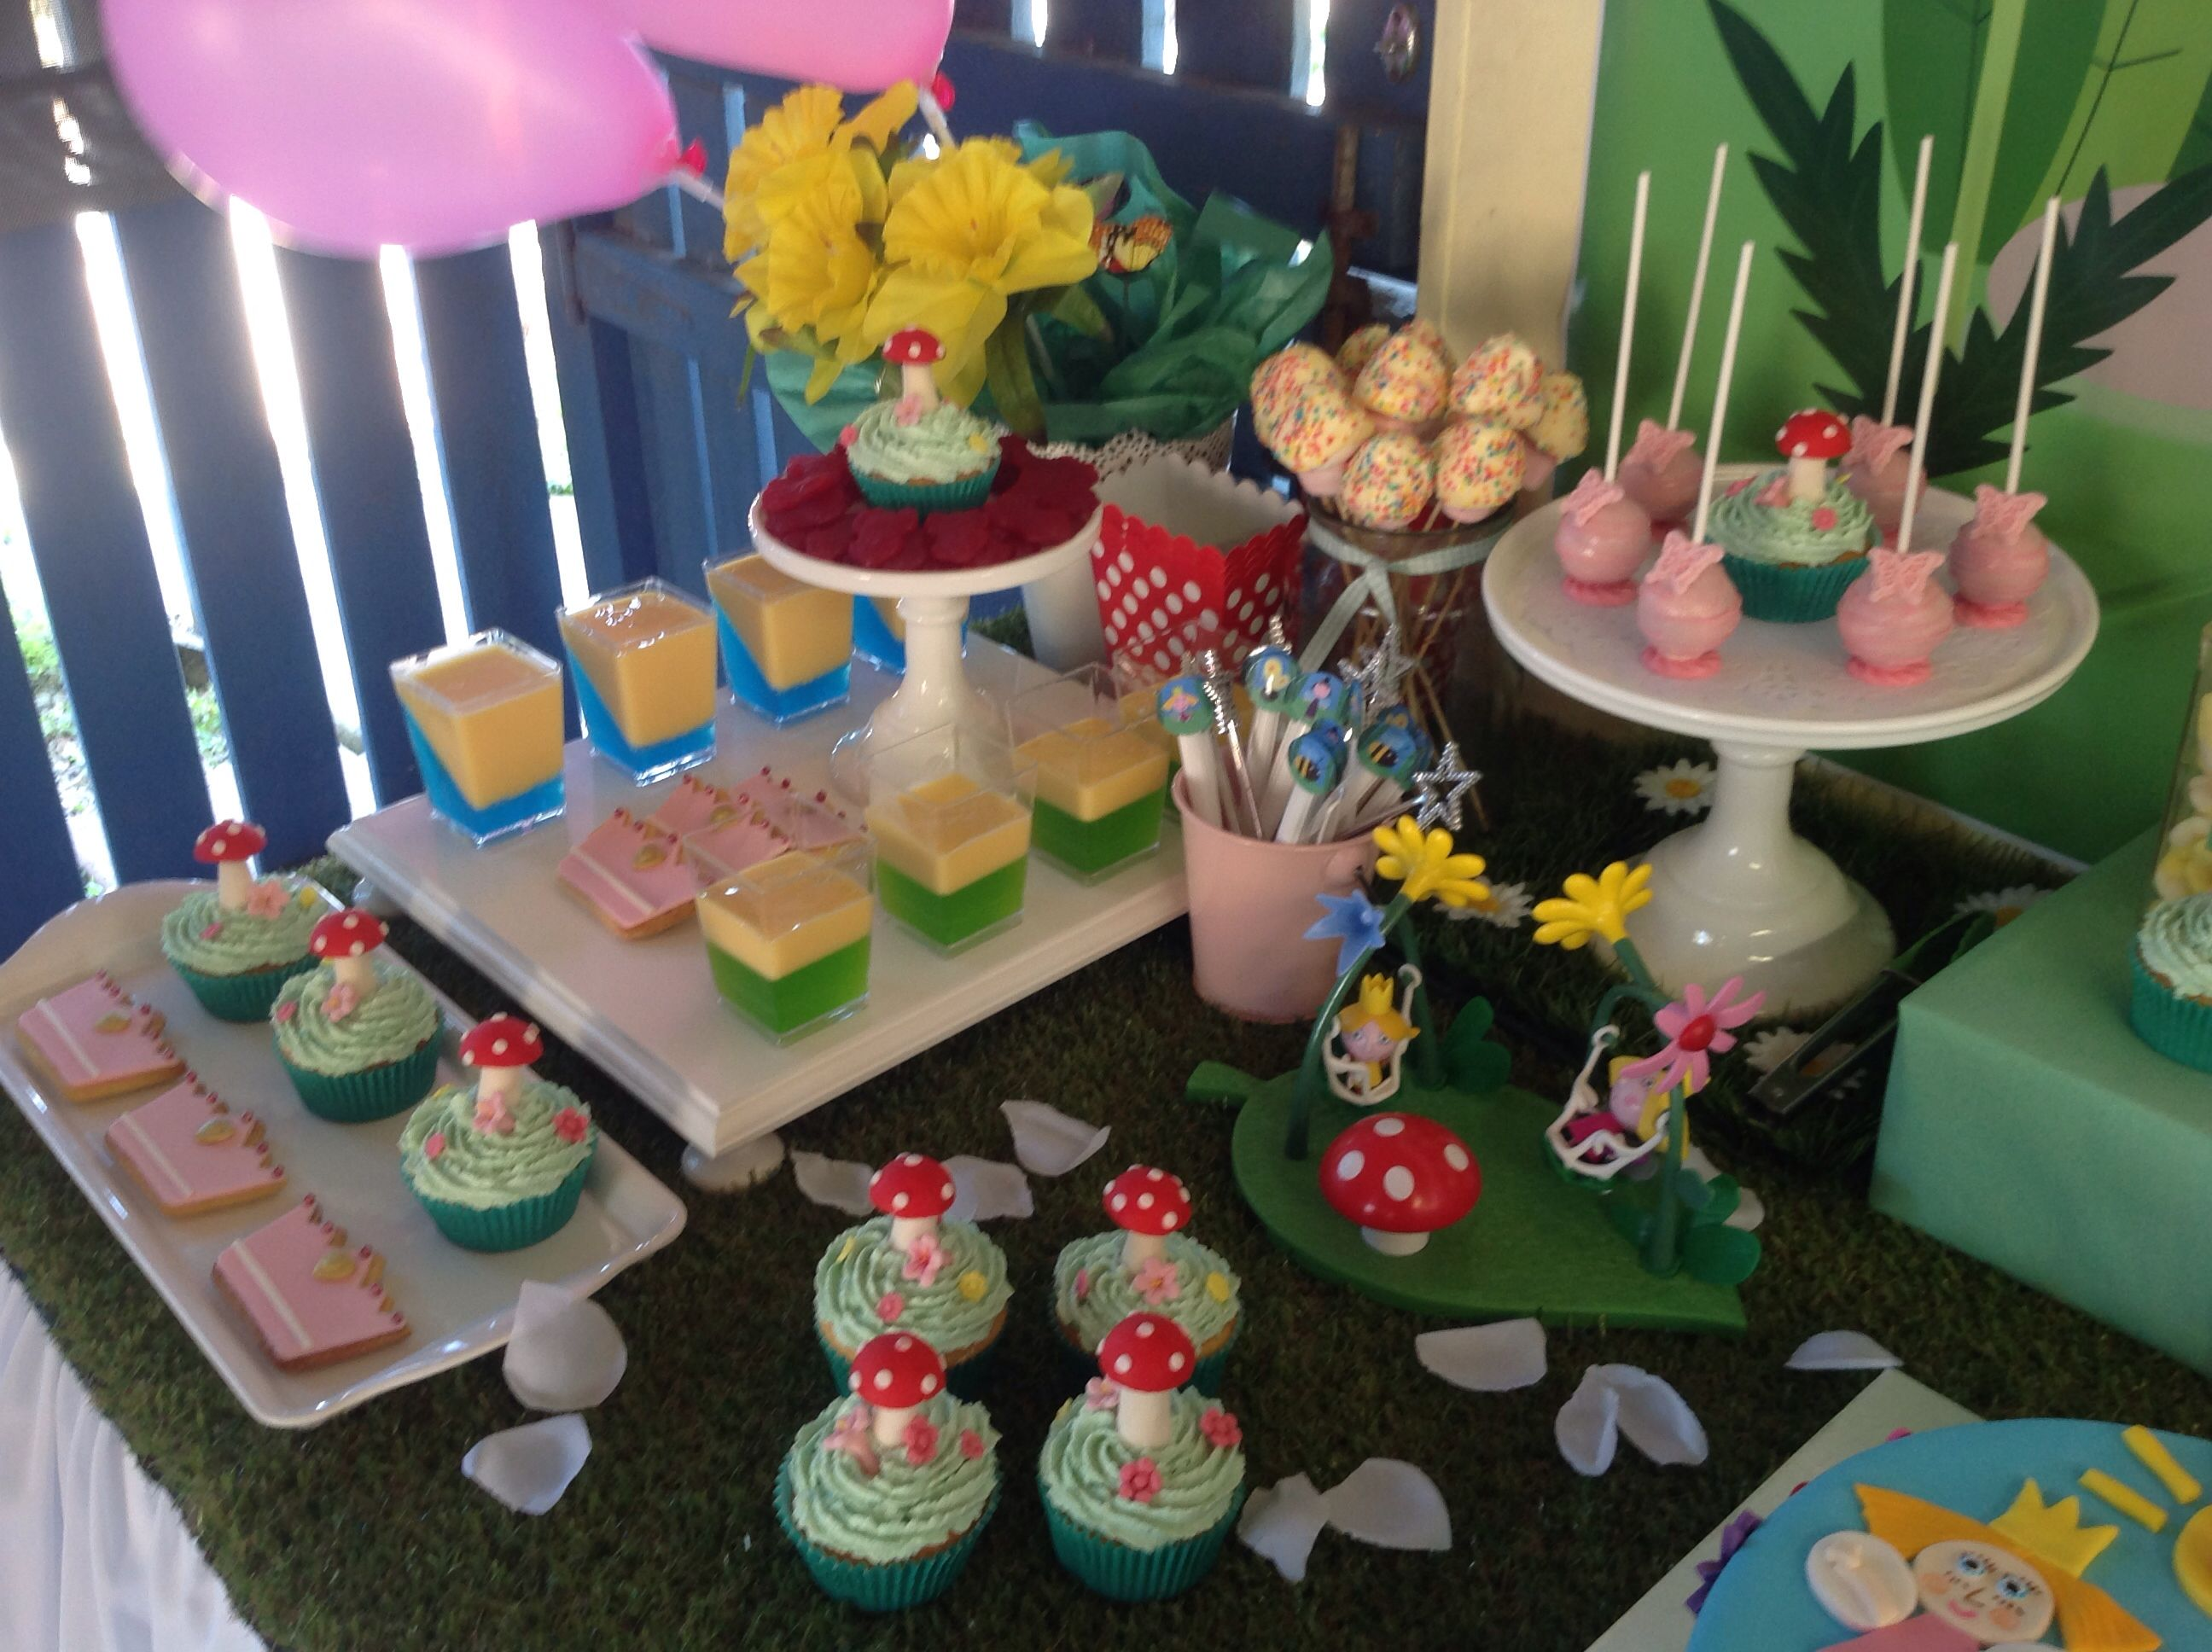 Ben and Holly party. | Ben and holly party | Pinterest | Birthdays ...